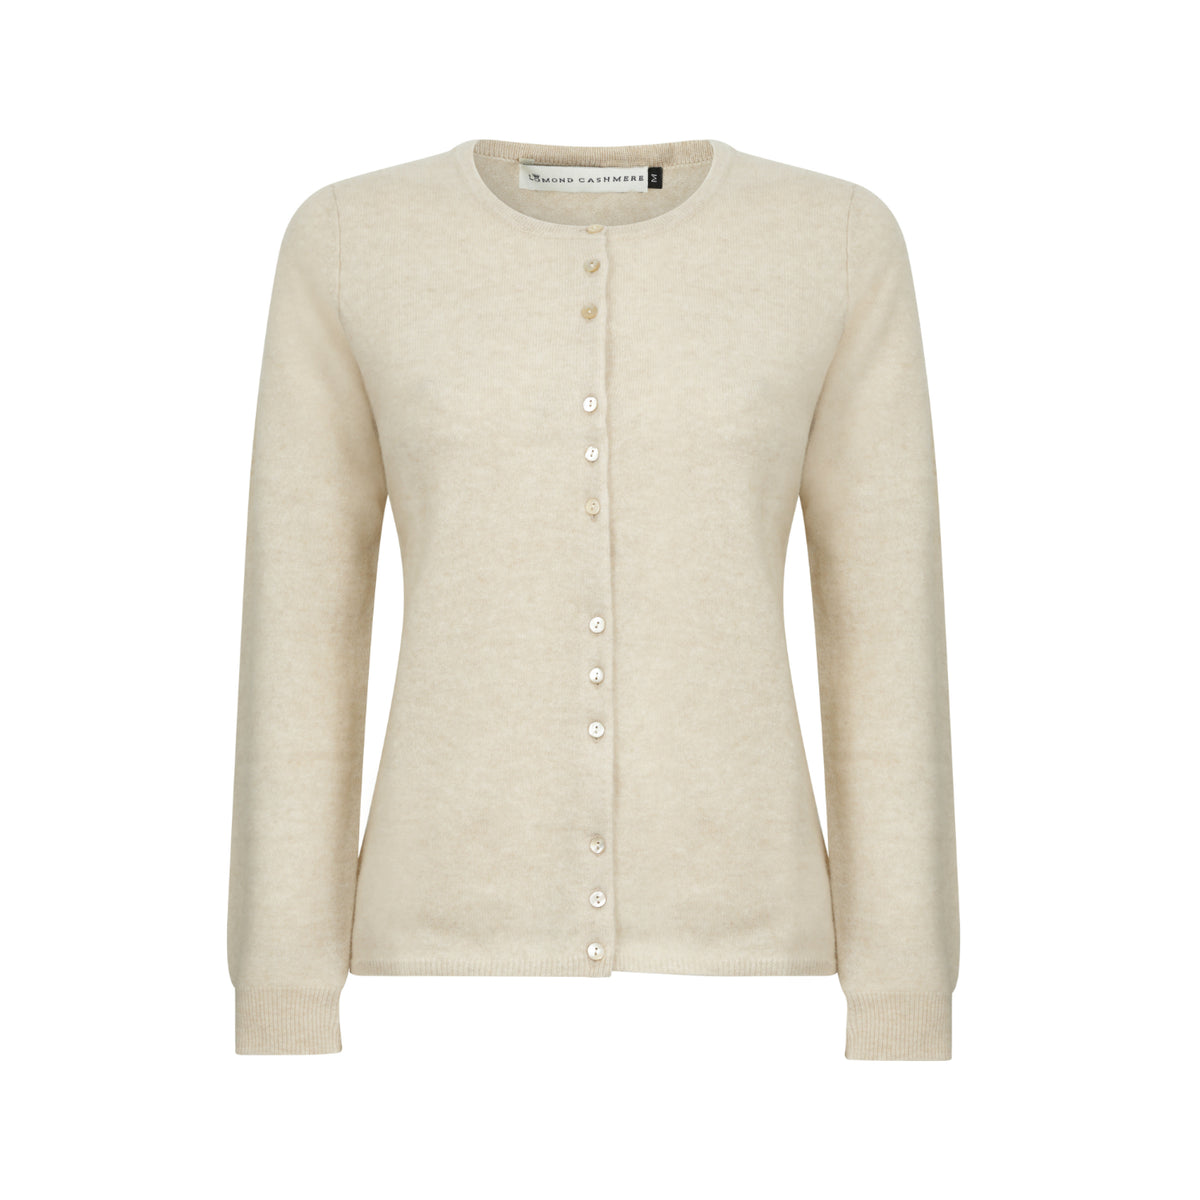 Ladies Fitted Round Neck Cashmere Cardigan | Beige | Shop at The Cashmere Choice | London